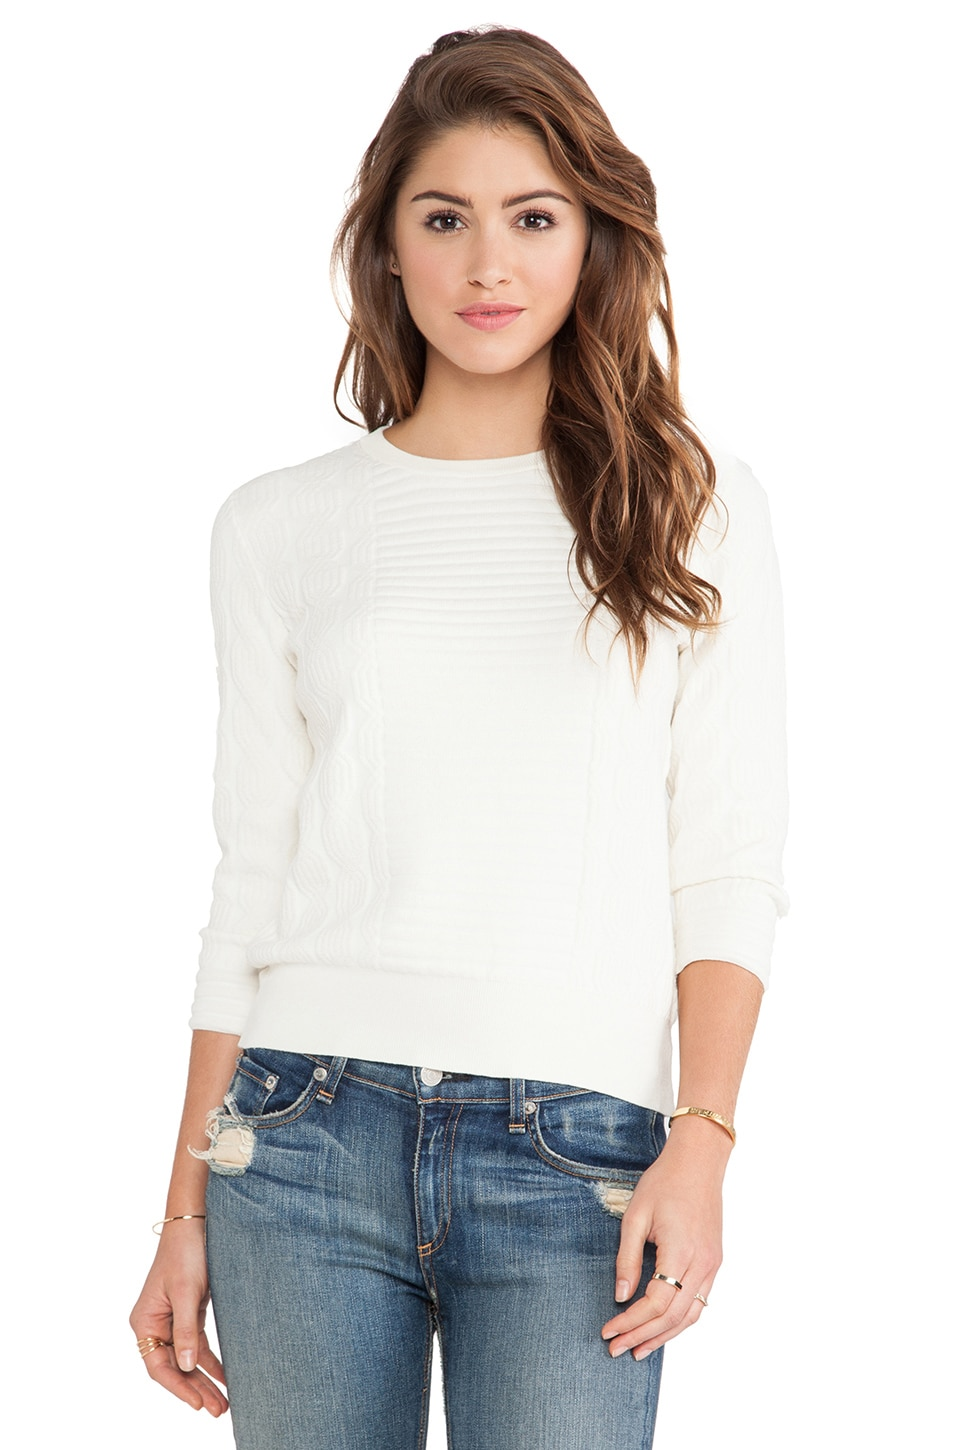 Marc by Marc Jacobs Lucinda Sweater in Antique White